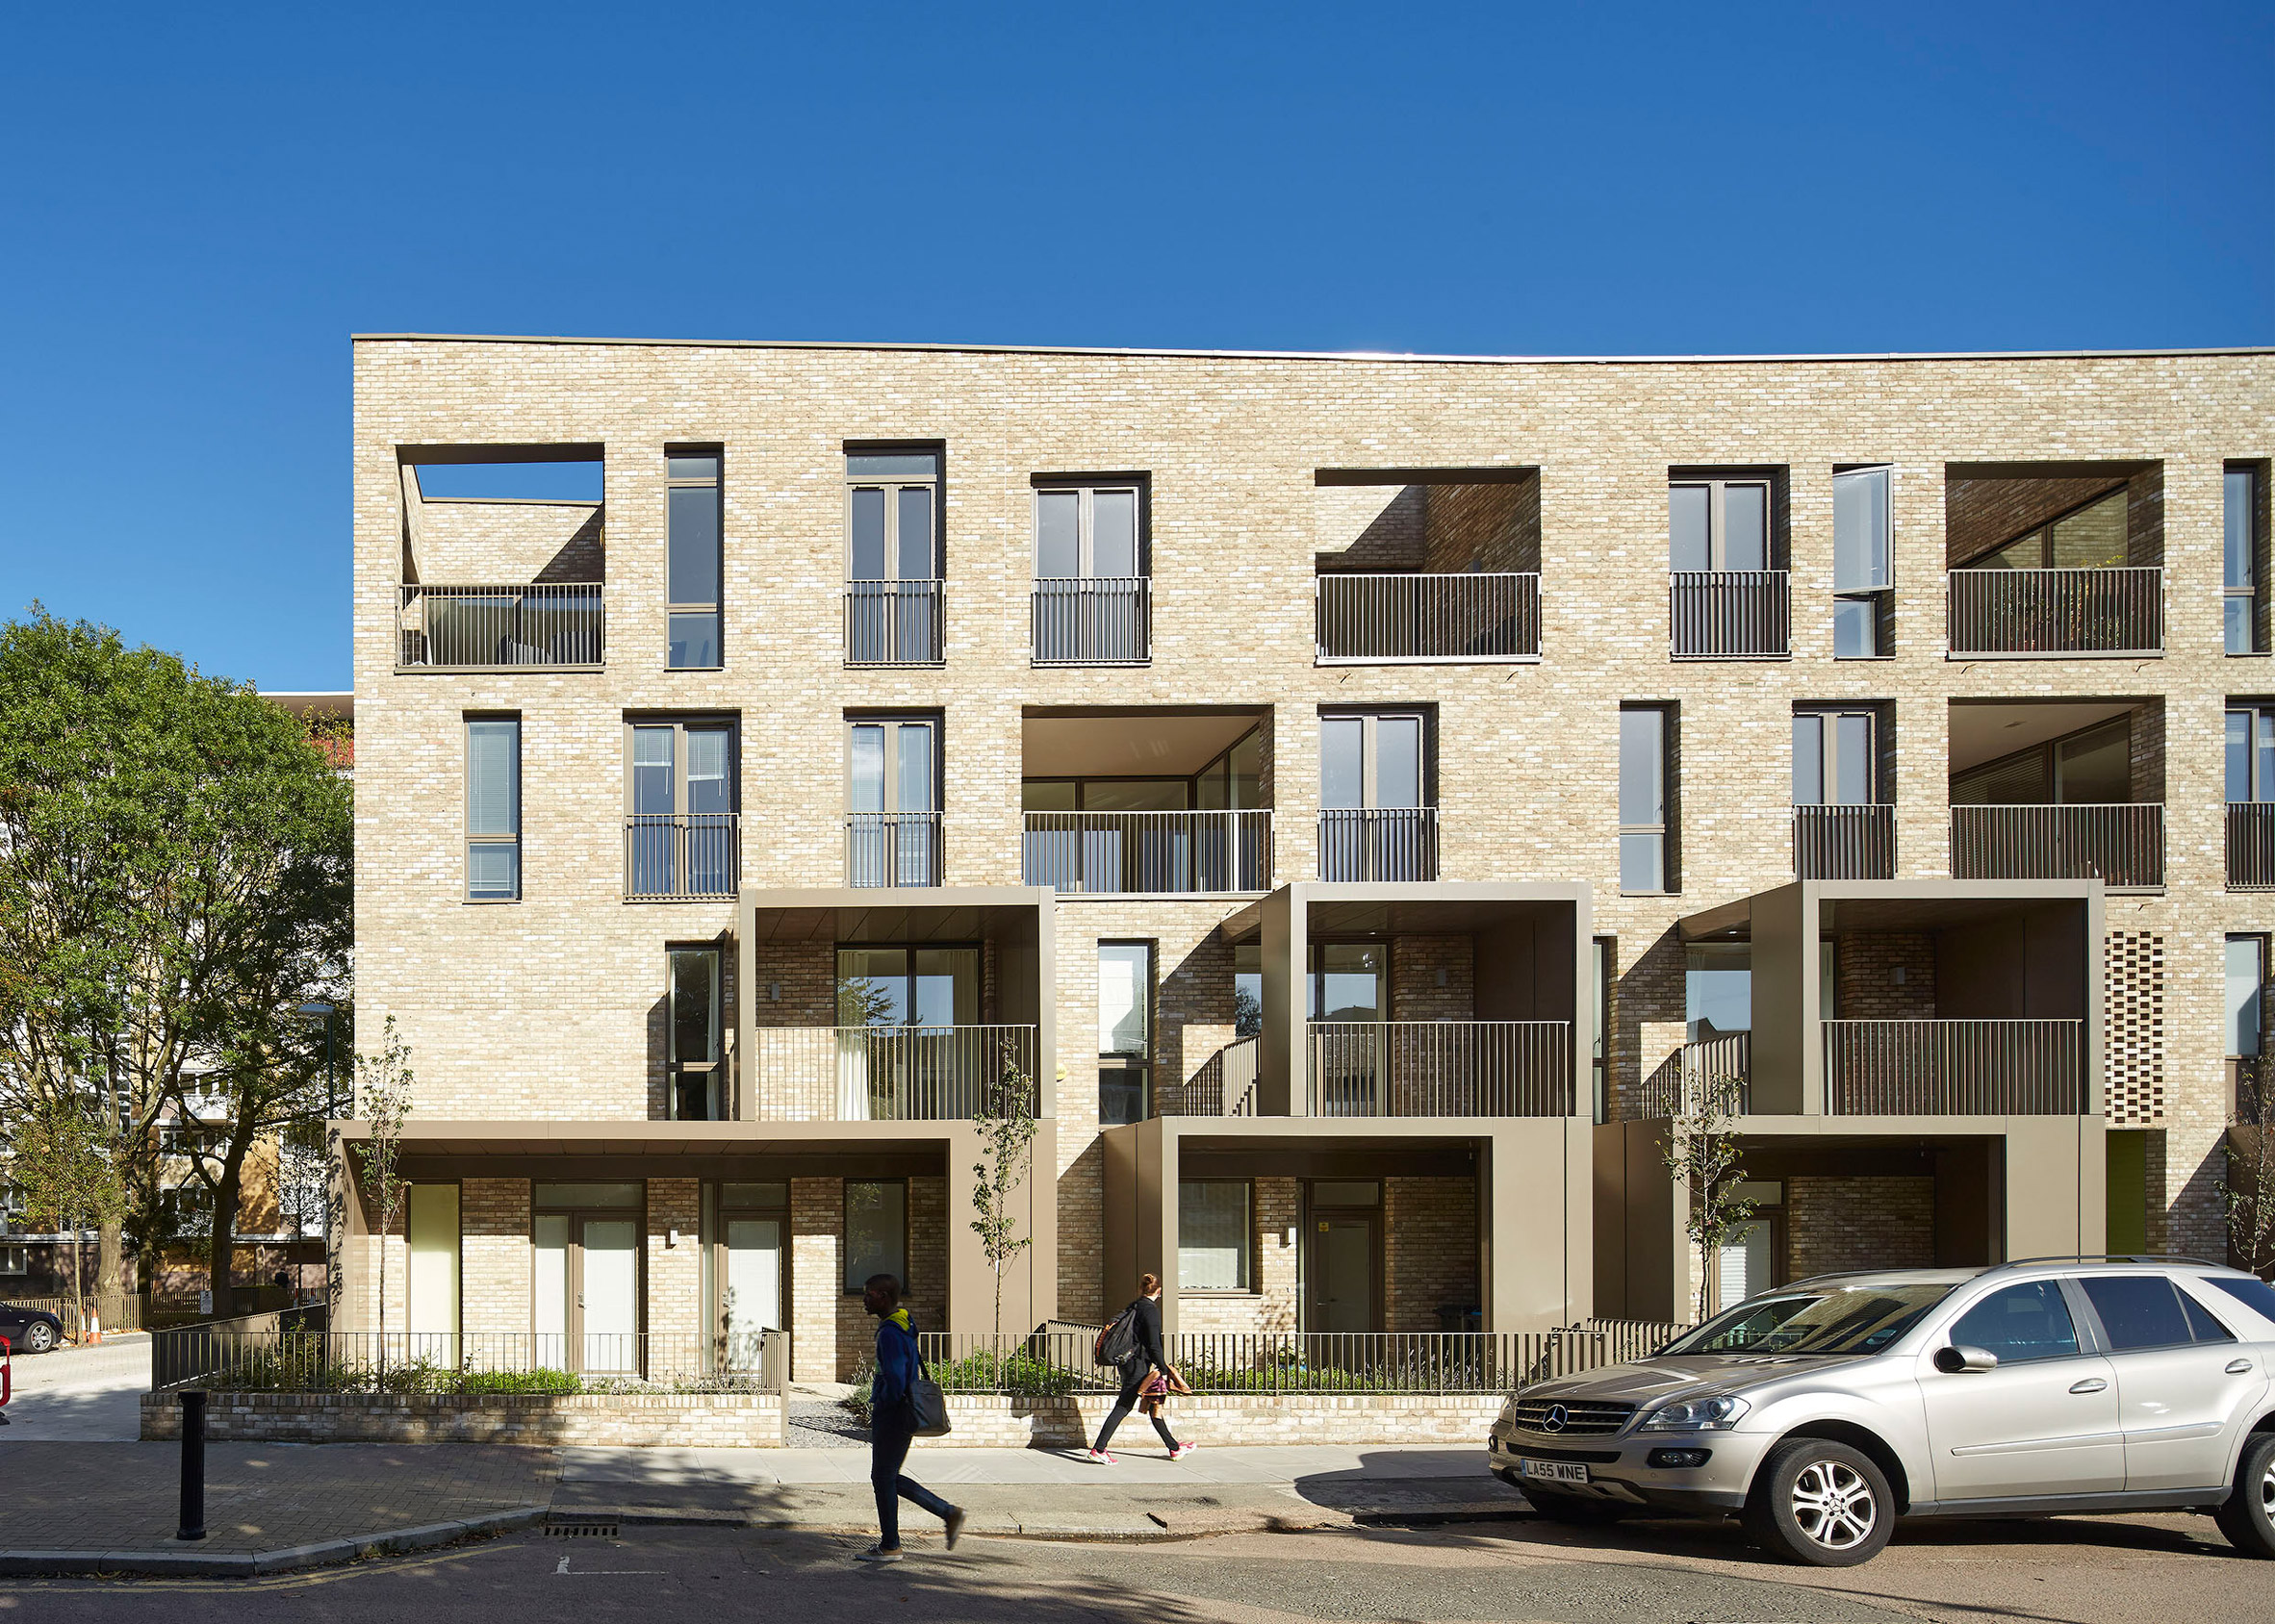 Ely Court, London, by Alison Brooks Architects